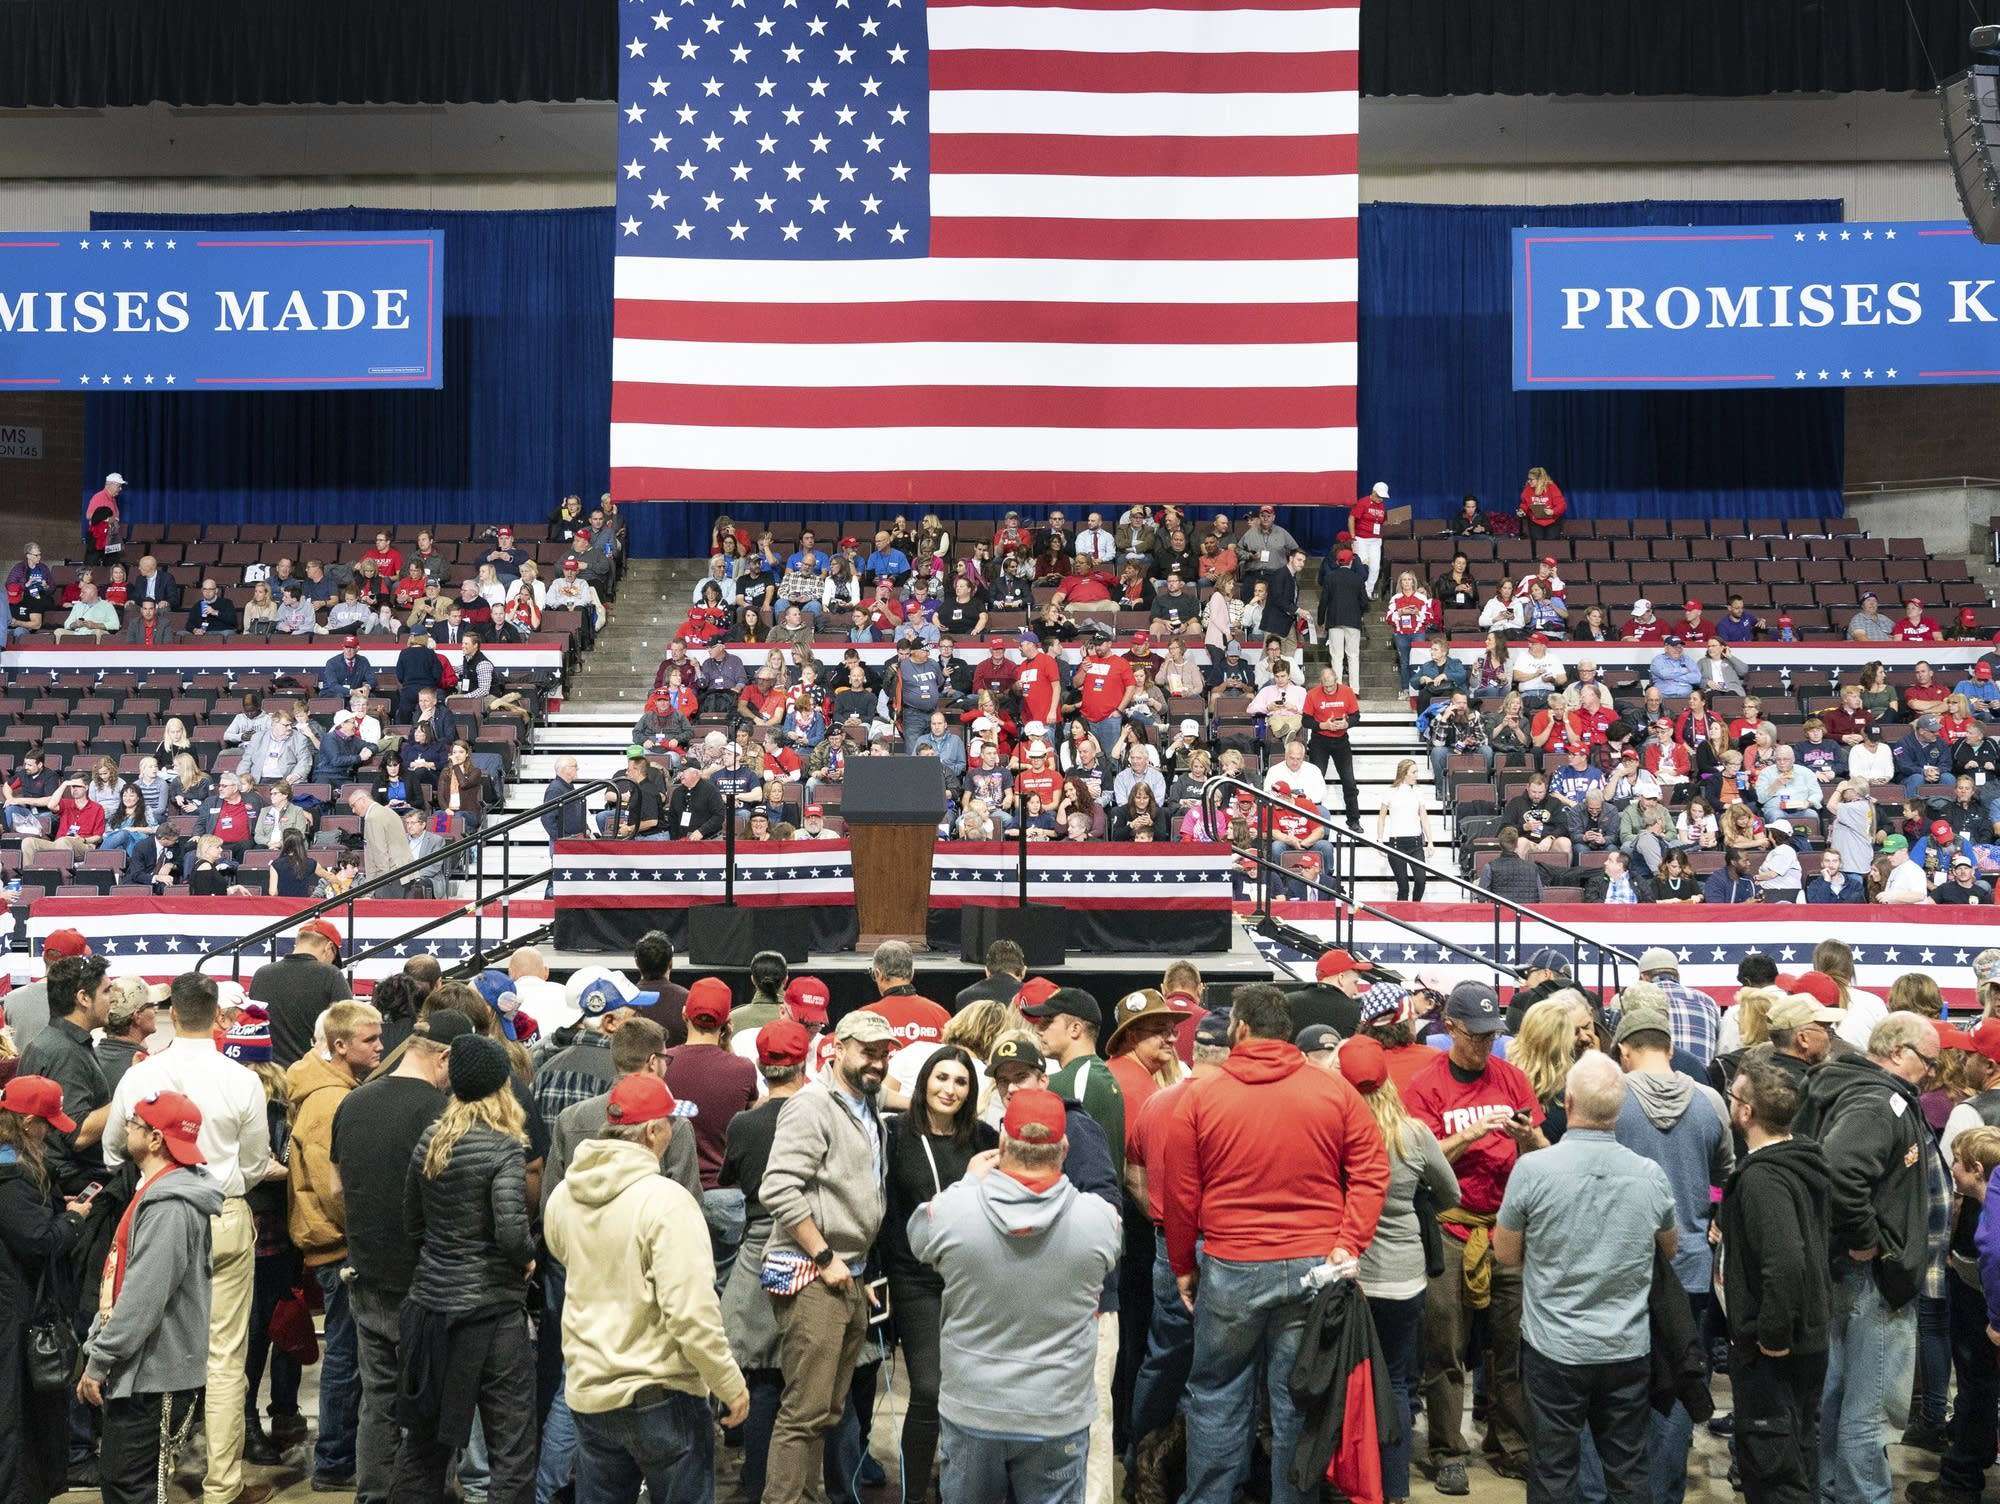 Rochester's Mayo Civic Center before Trump's arrival.